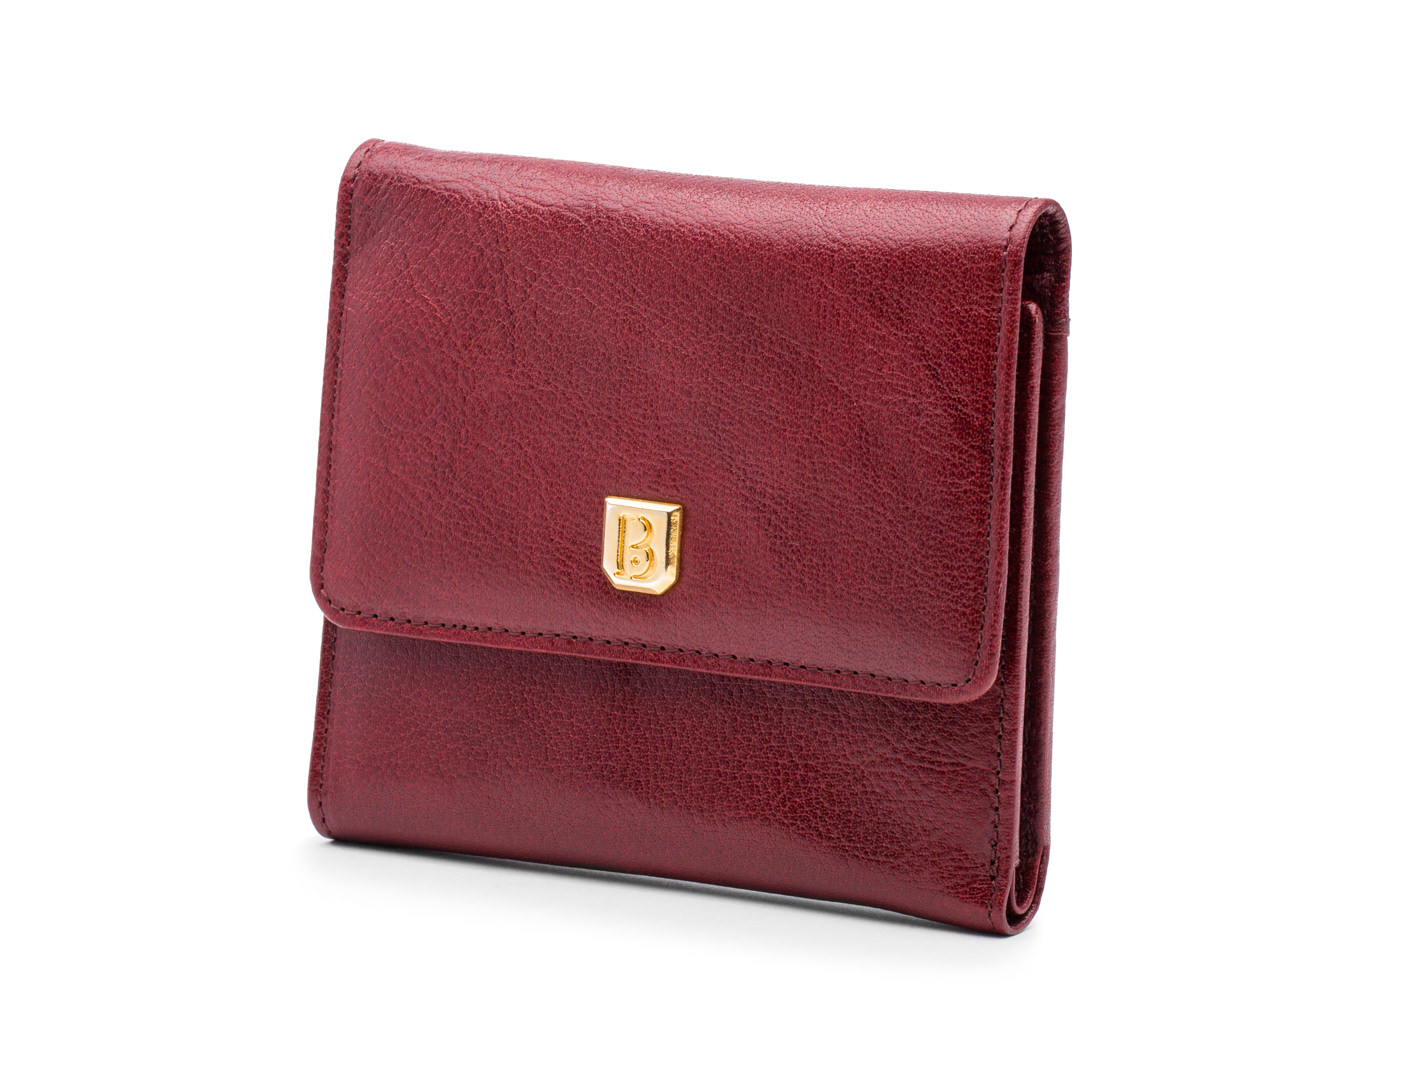 Oxblood Small Wallet-72 Brick Red - 72 Brick Red